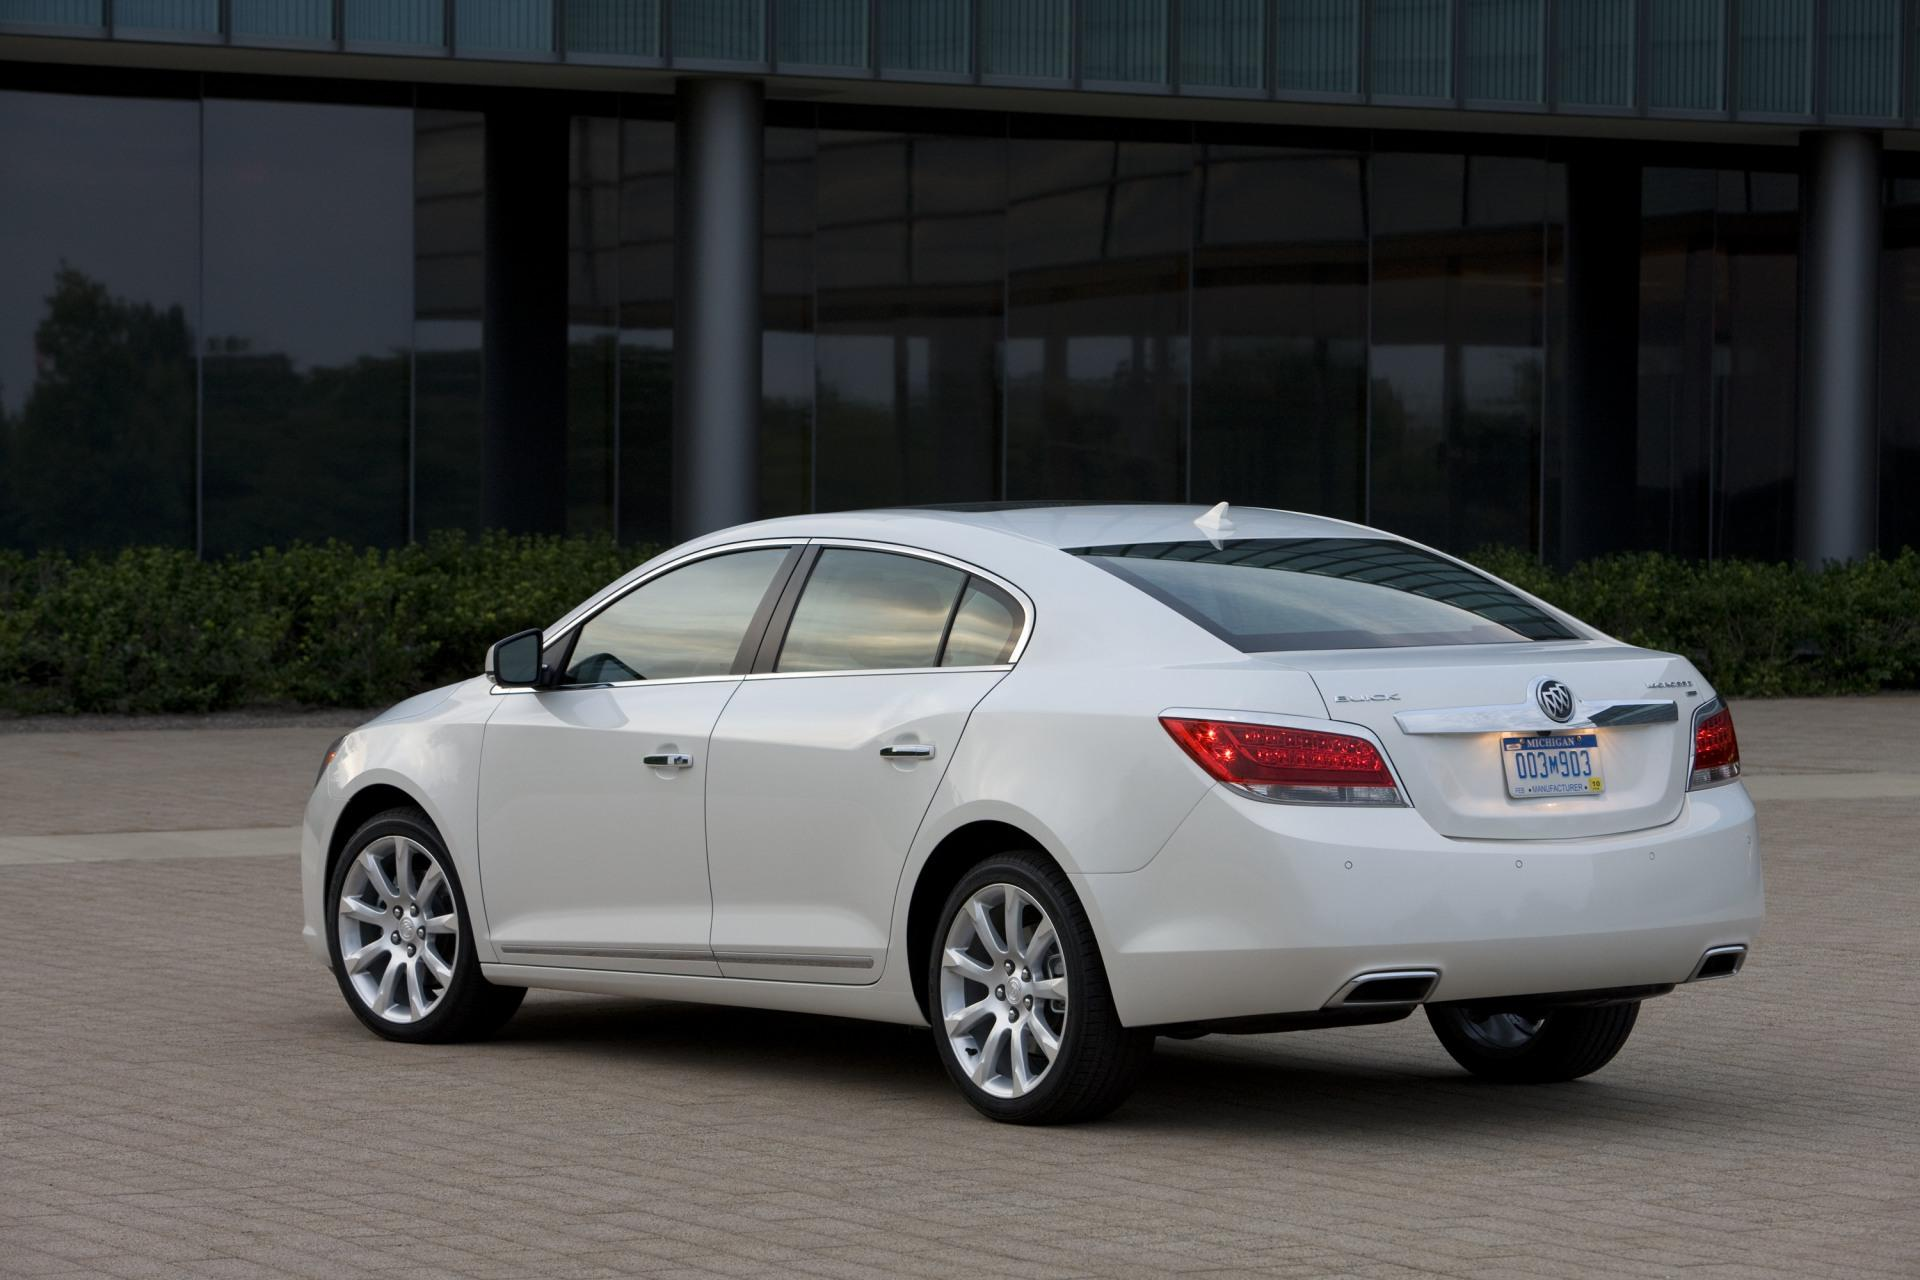 2011 Buick Lacrosse Image Photo 21 Of 34